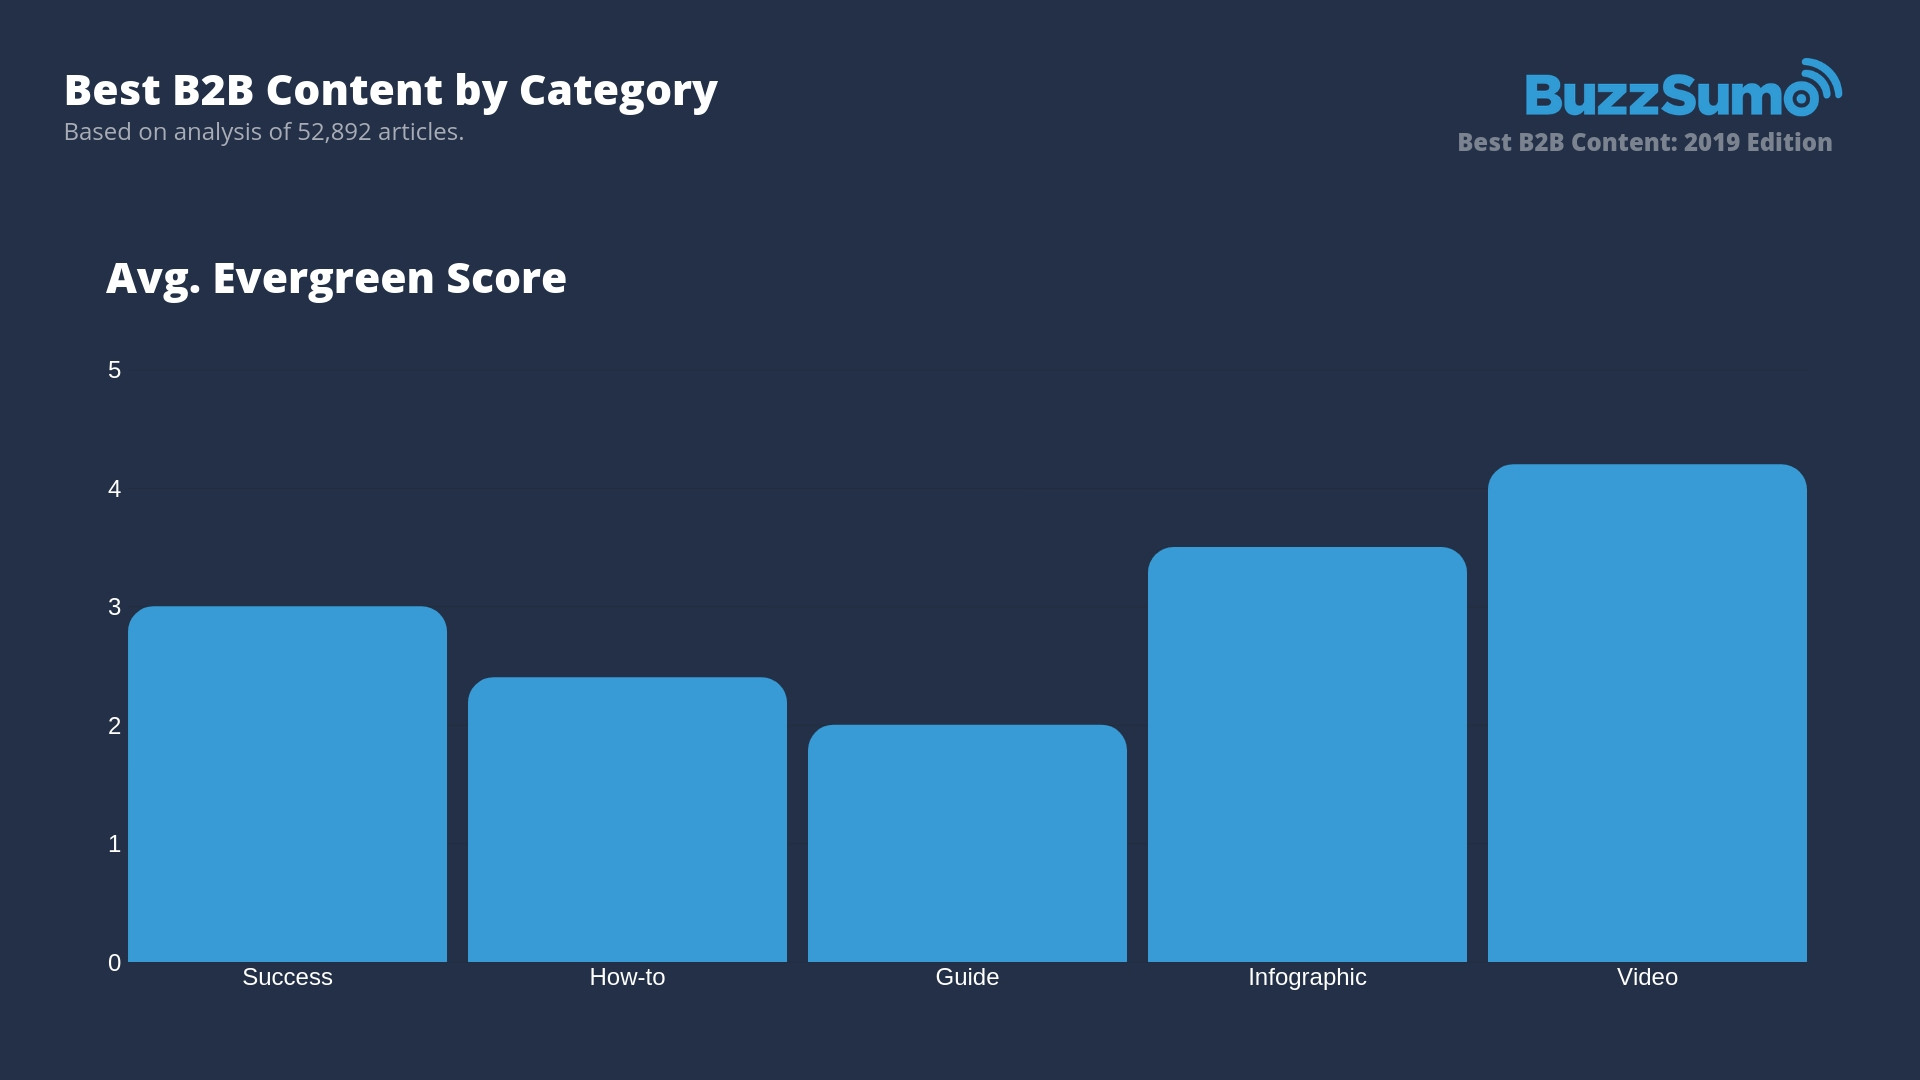 best b2b content category by evergreen score chart